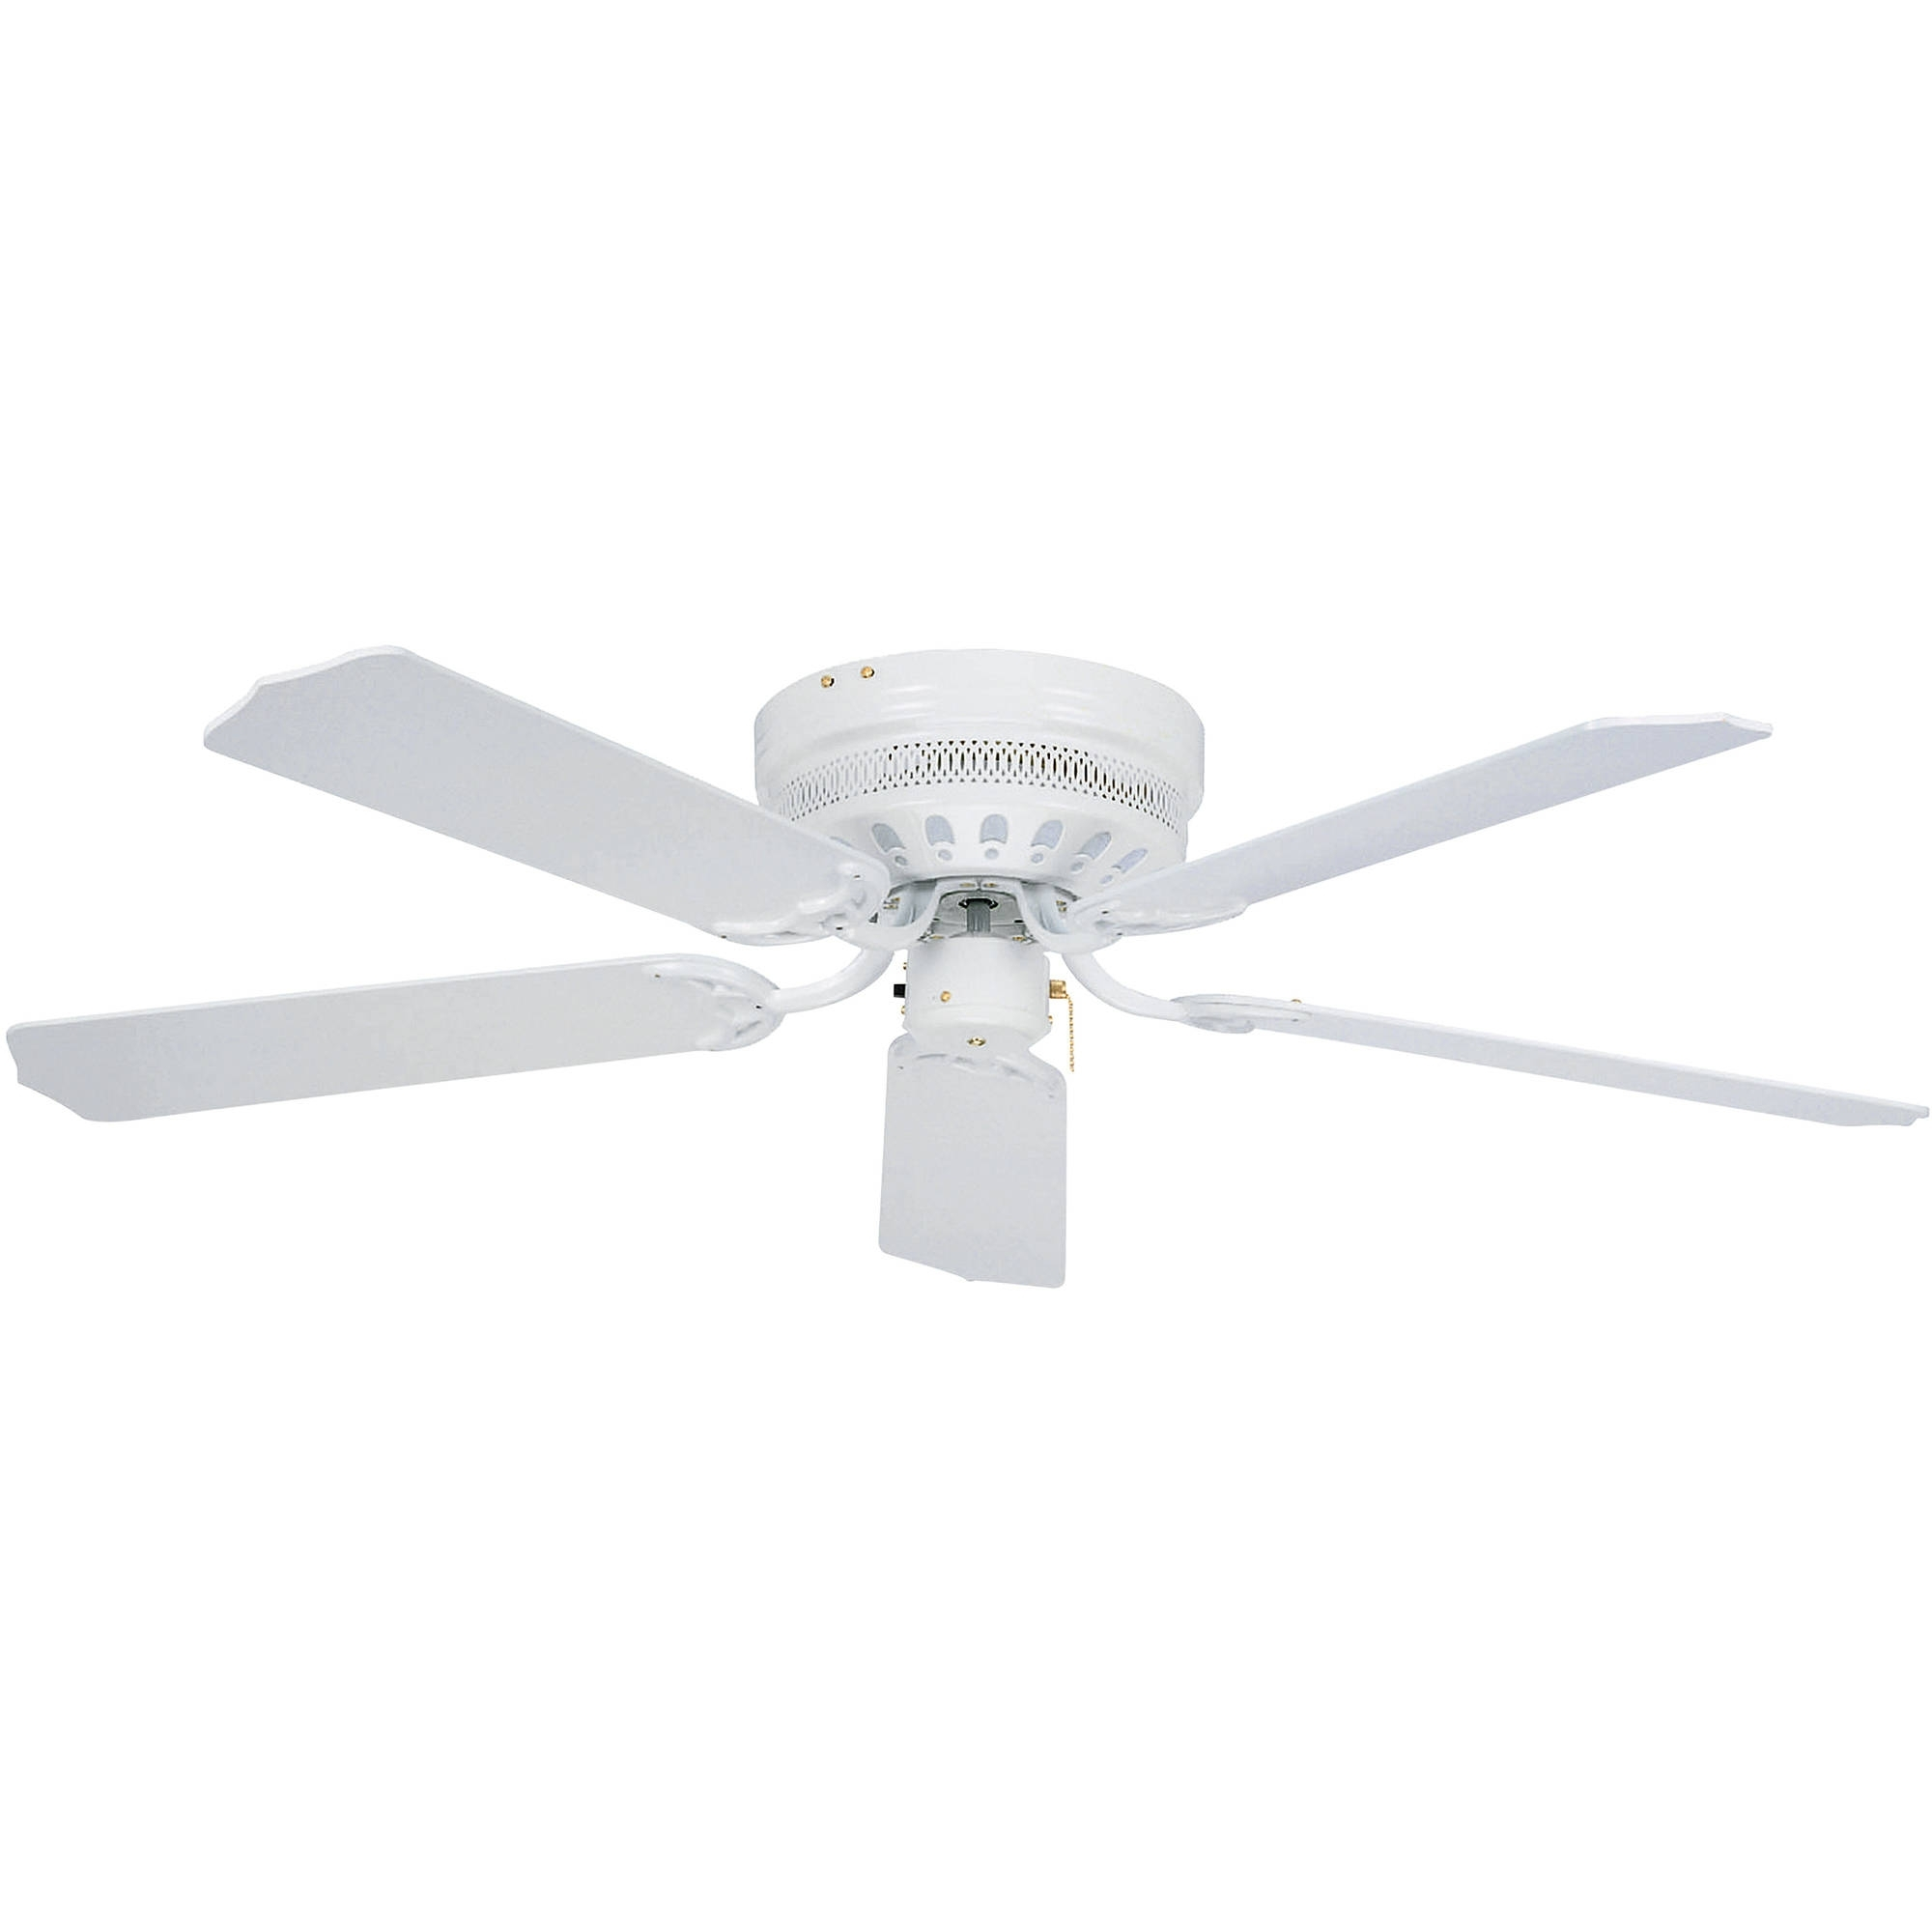 """Outdoor Ceiling Fans With Lights At Walmart Throughout Latest 42"""" Mainstays Hugger Indoor Ceiling Fan With Light, White – Walmart (View 9 of 20)"""